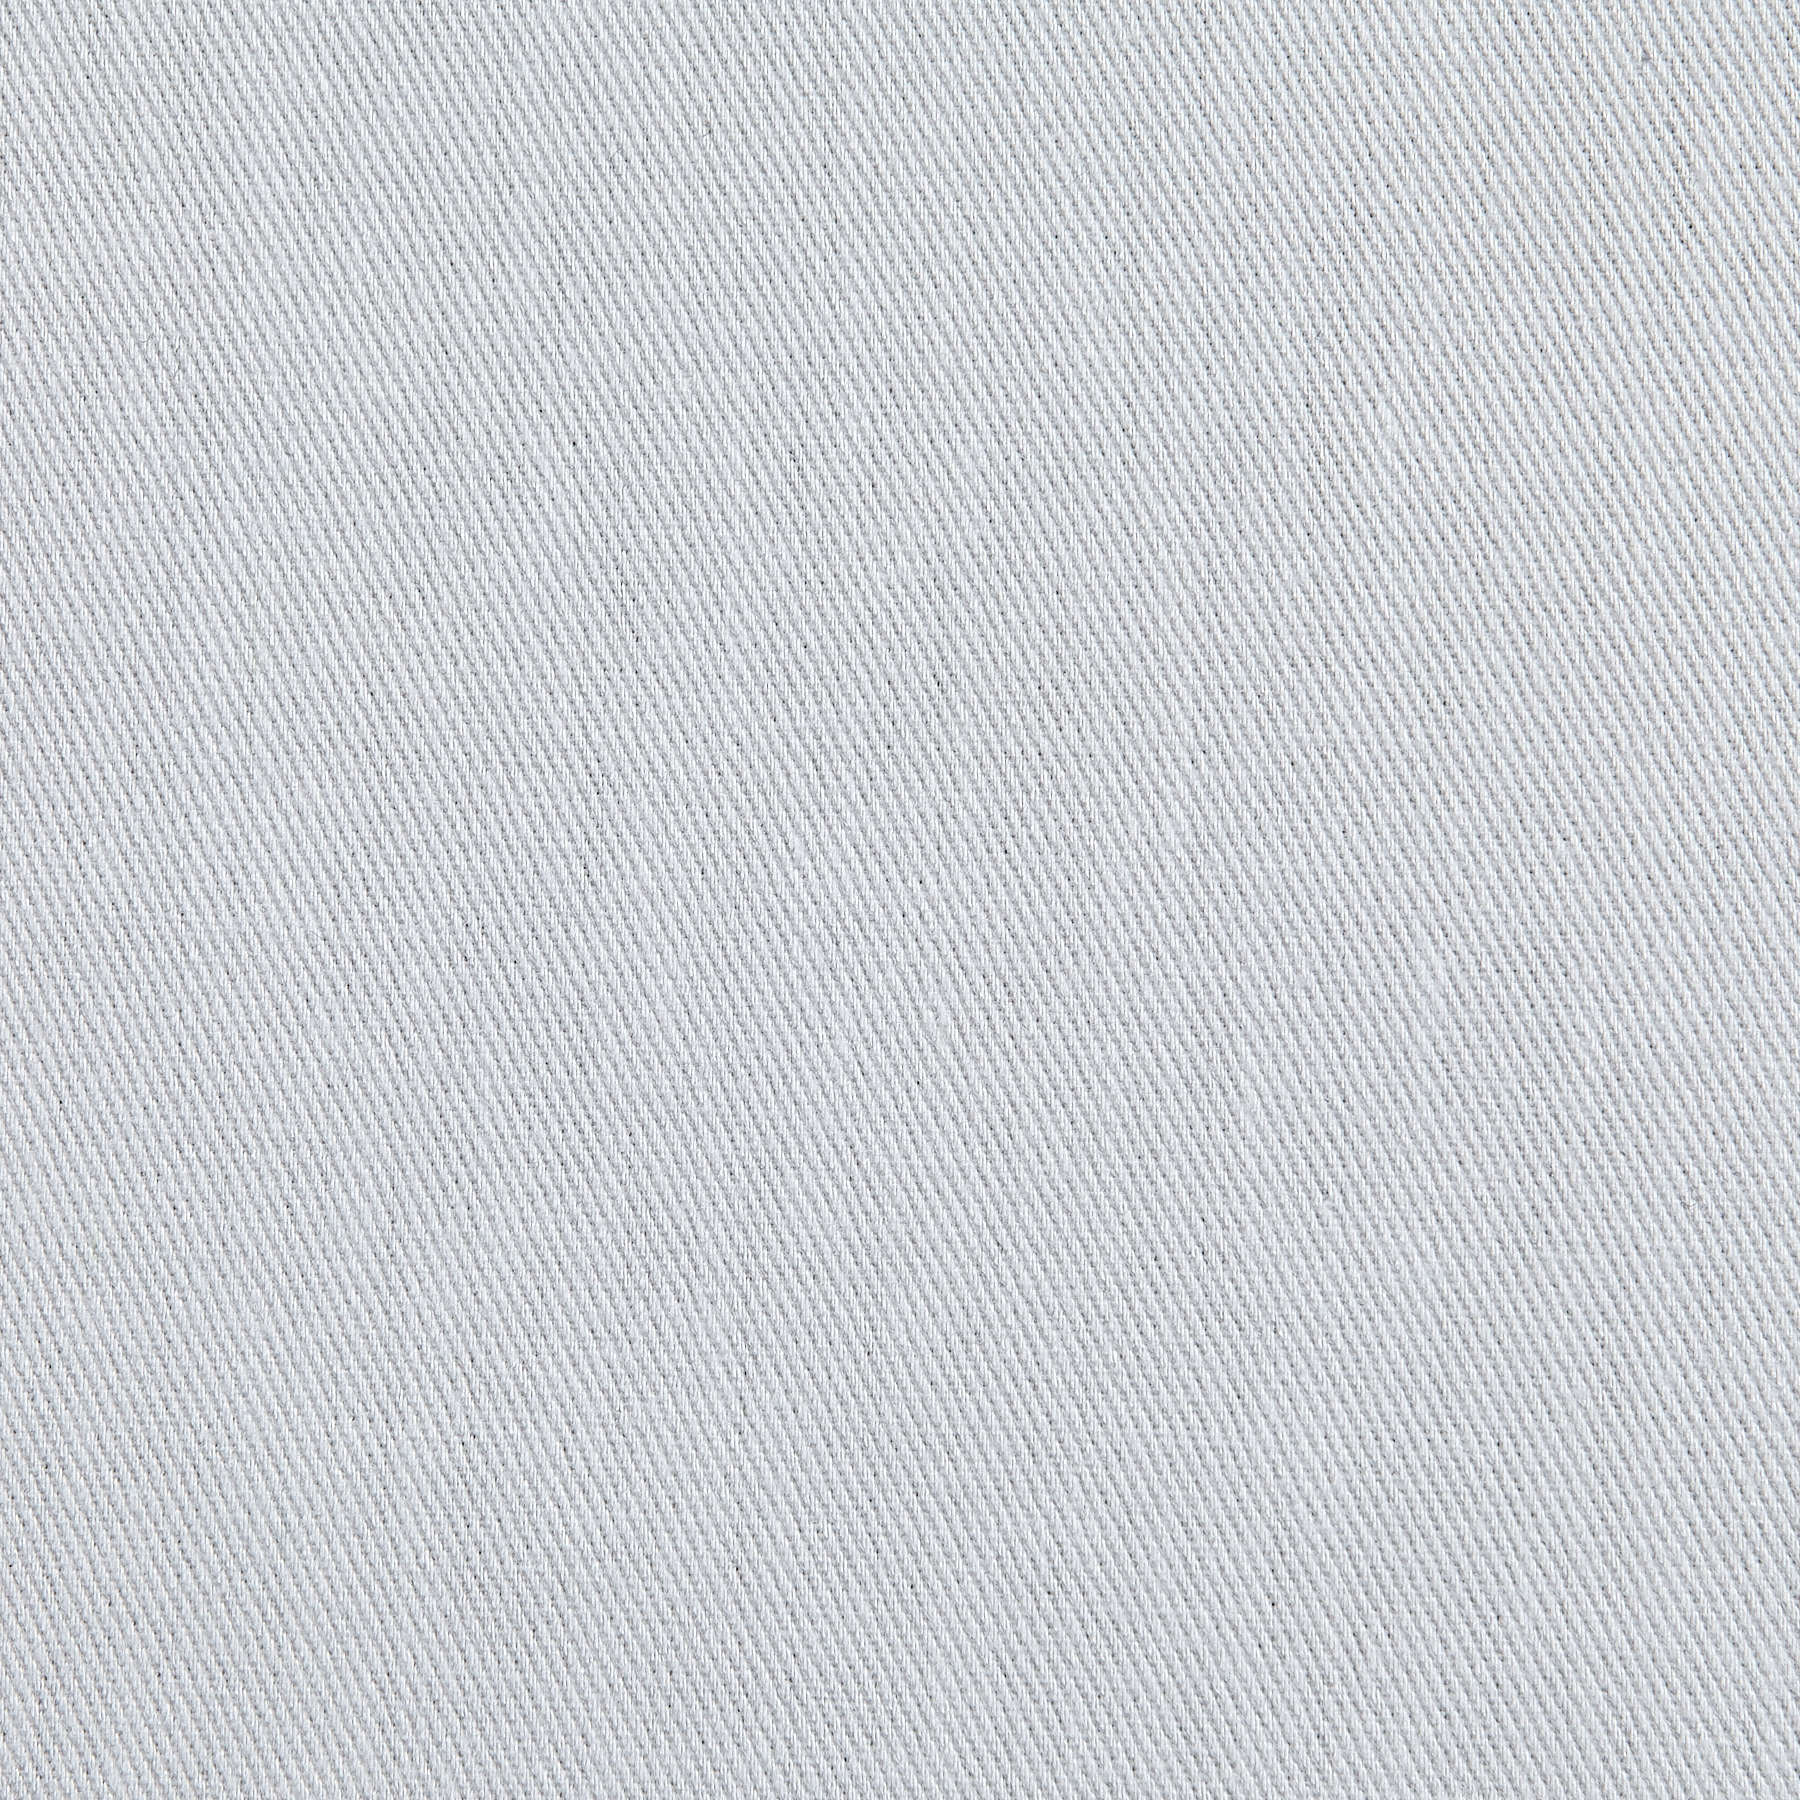 Sanded/Brushed Twill White Fabric by Carr in USA